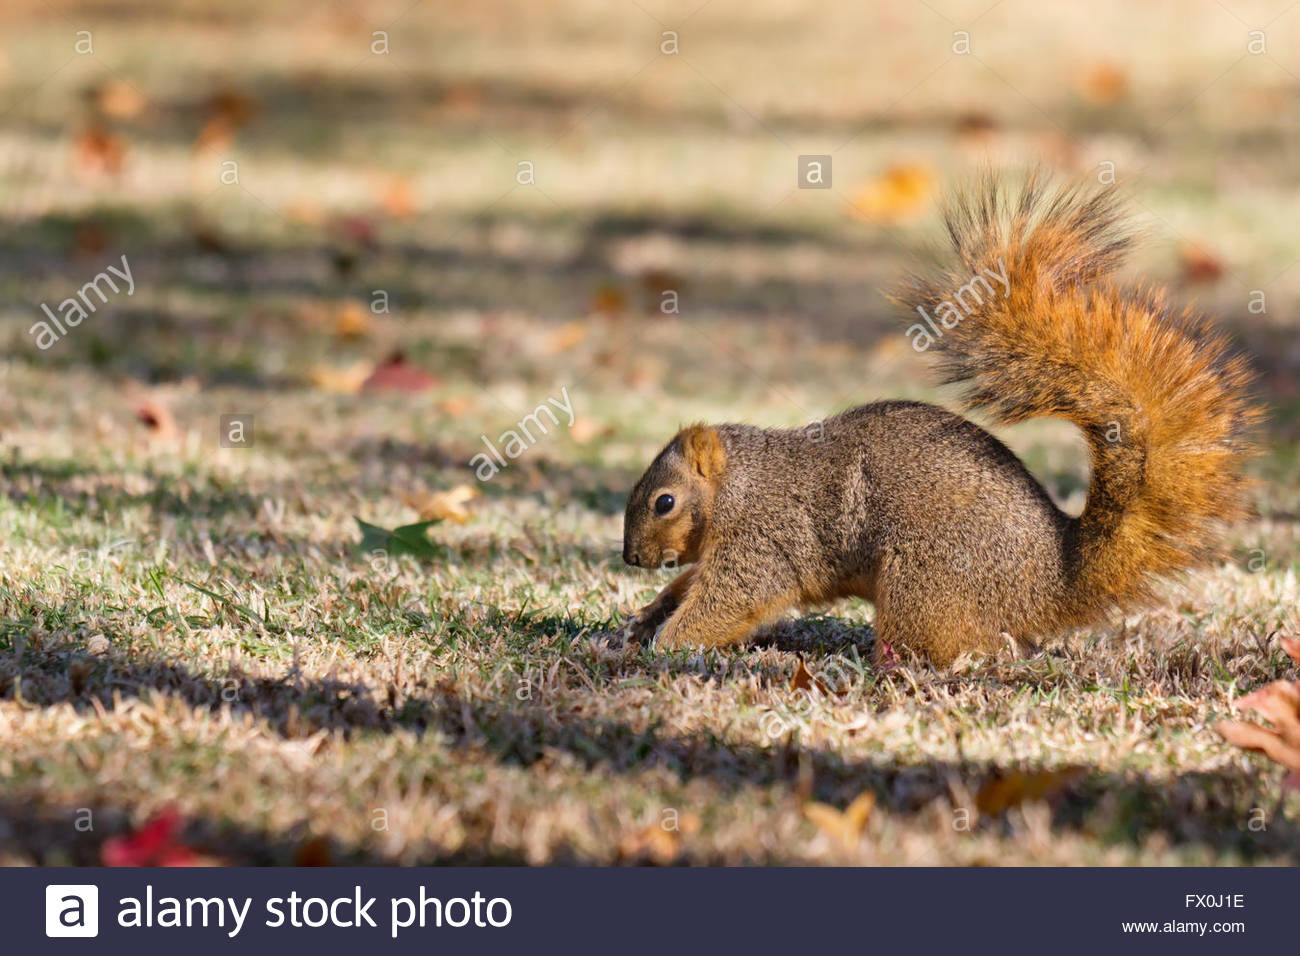 Squirrel burying nuts in fall in preparation for winter - Stock Image